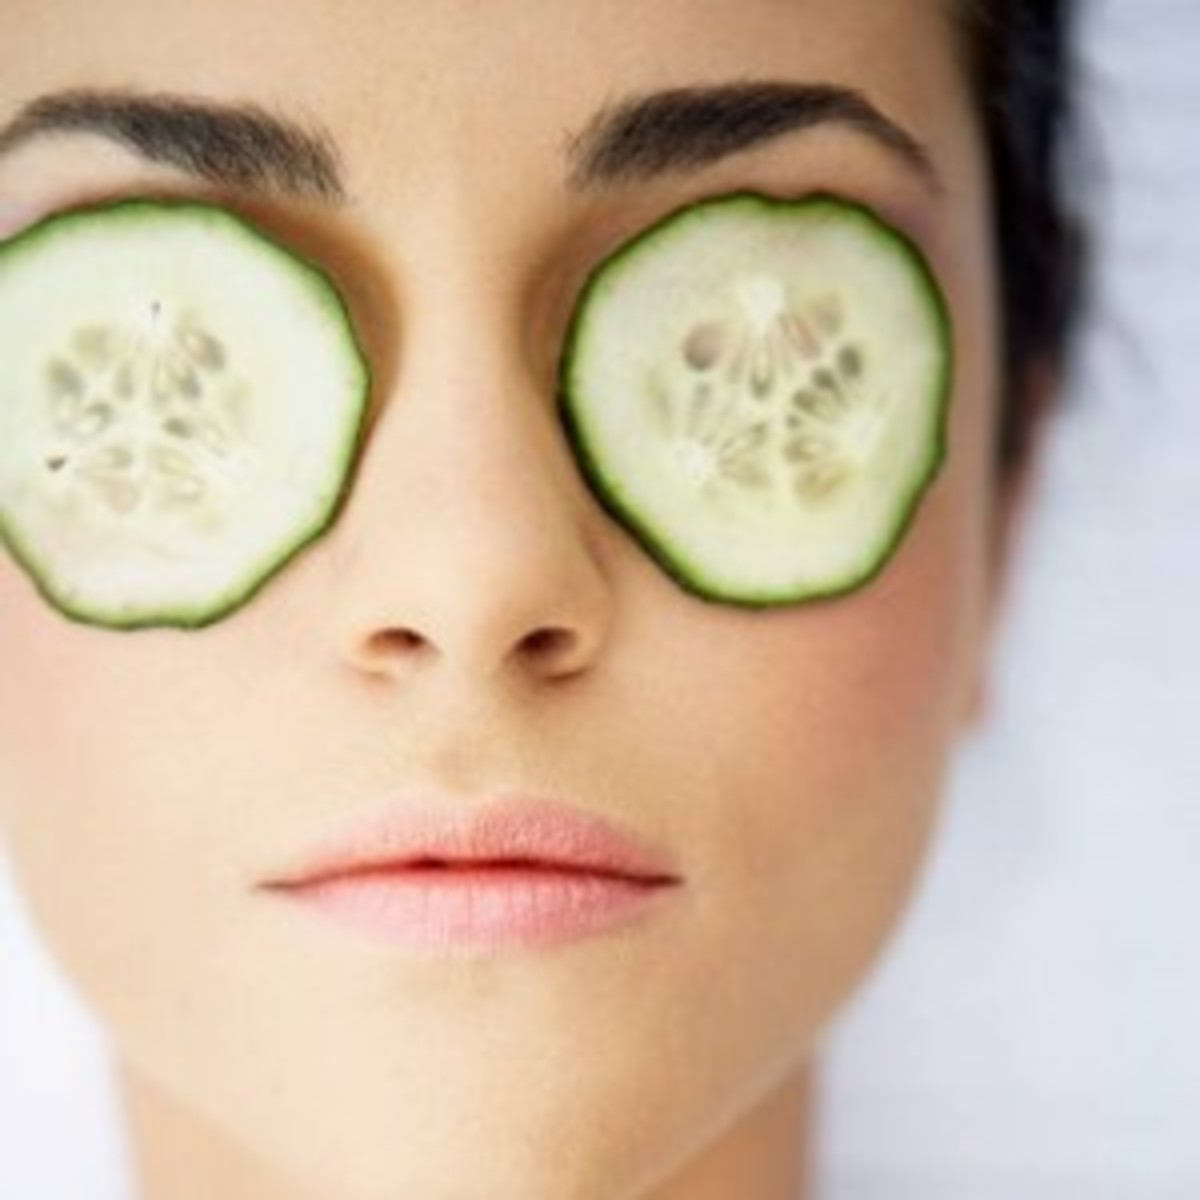 Slice cool cucumbers and lay them over the eyes